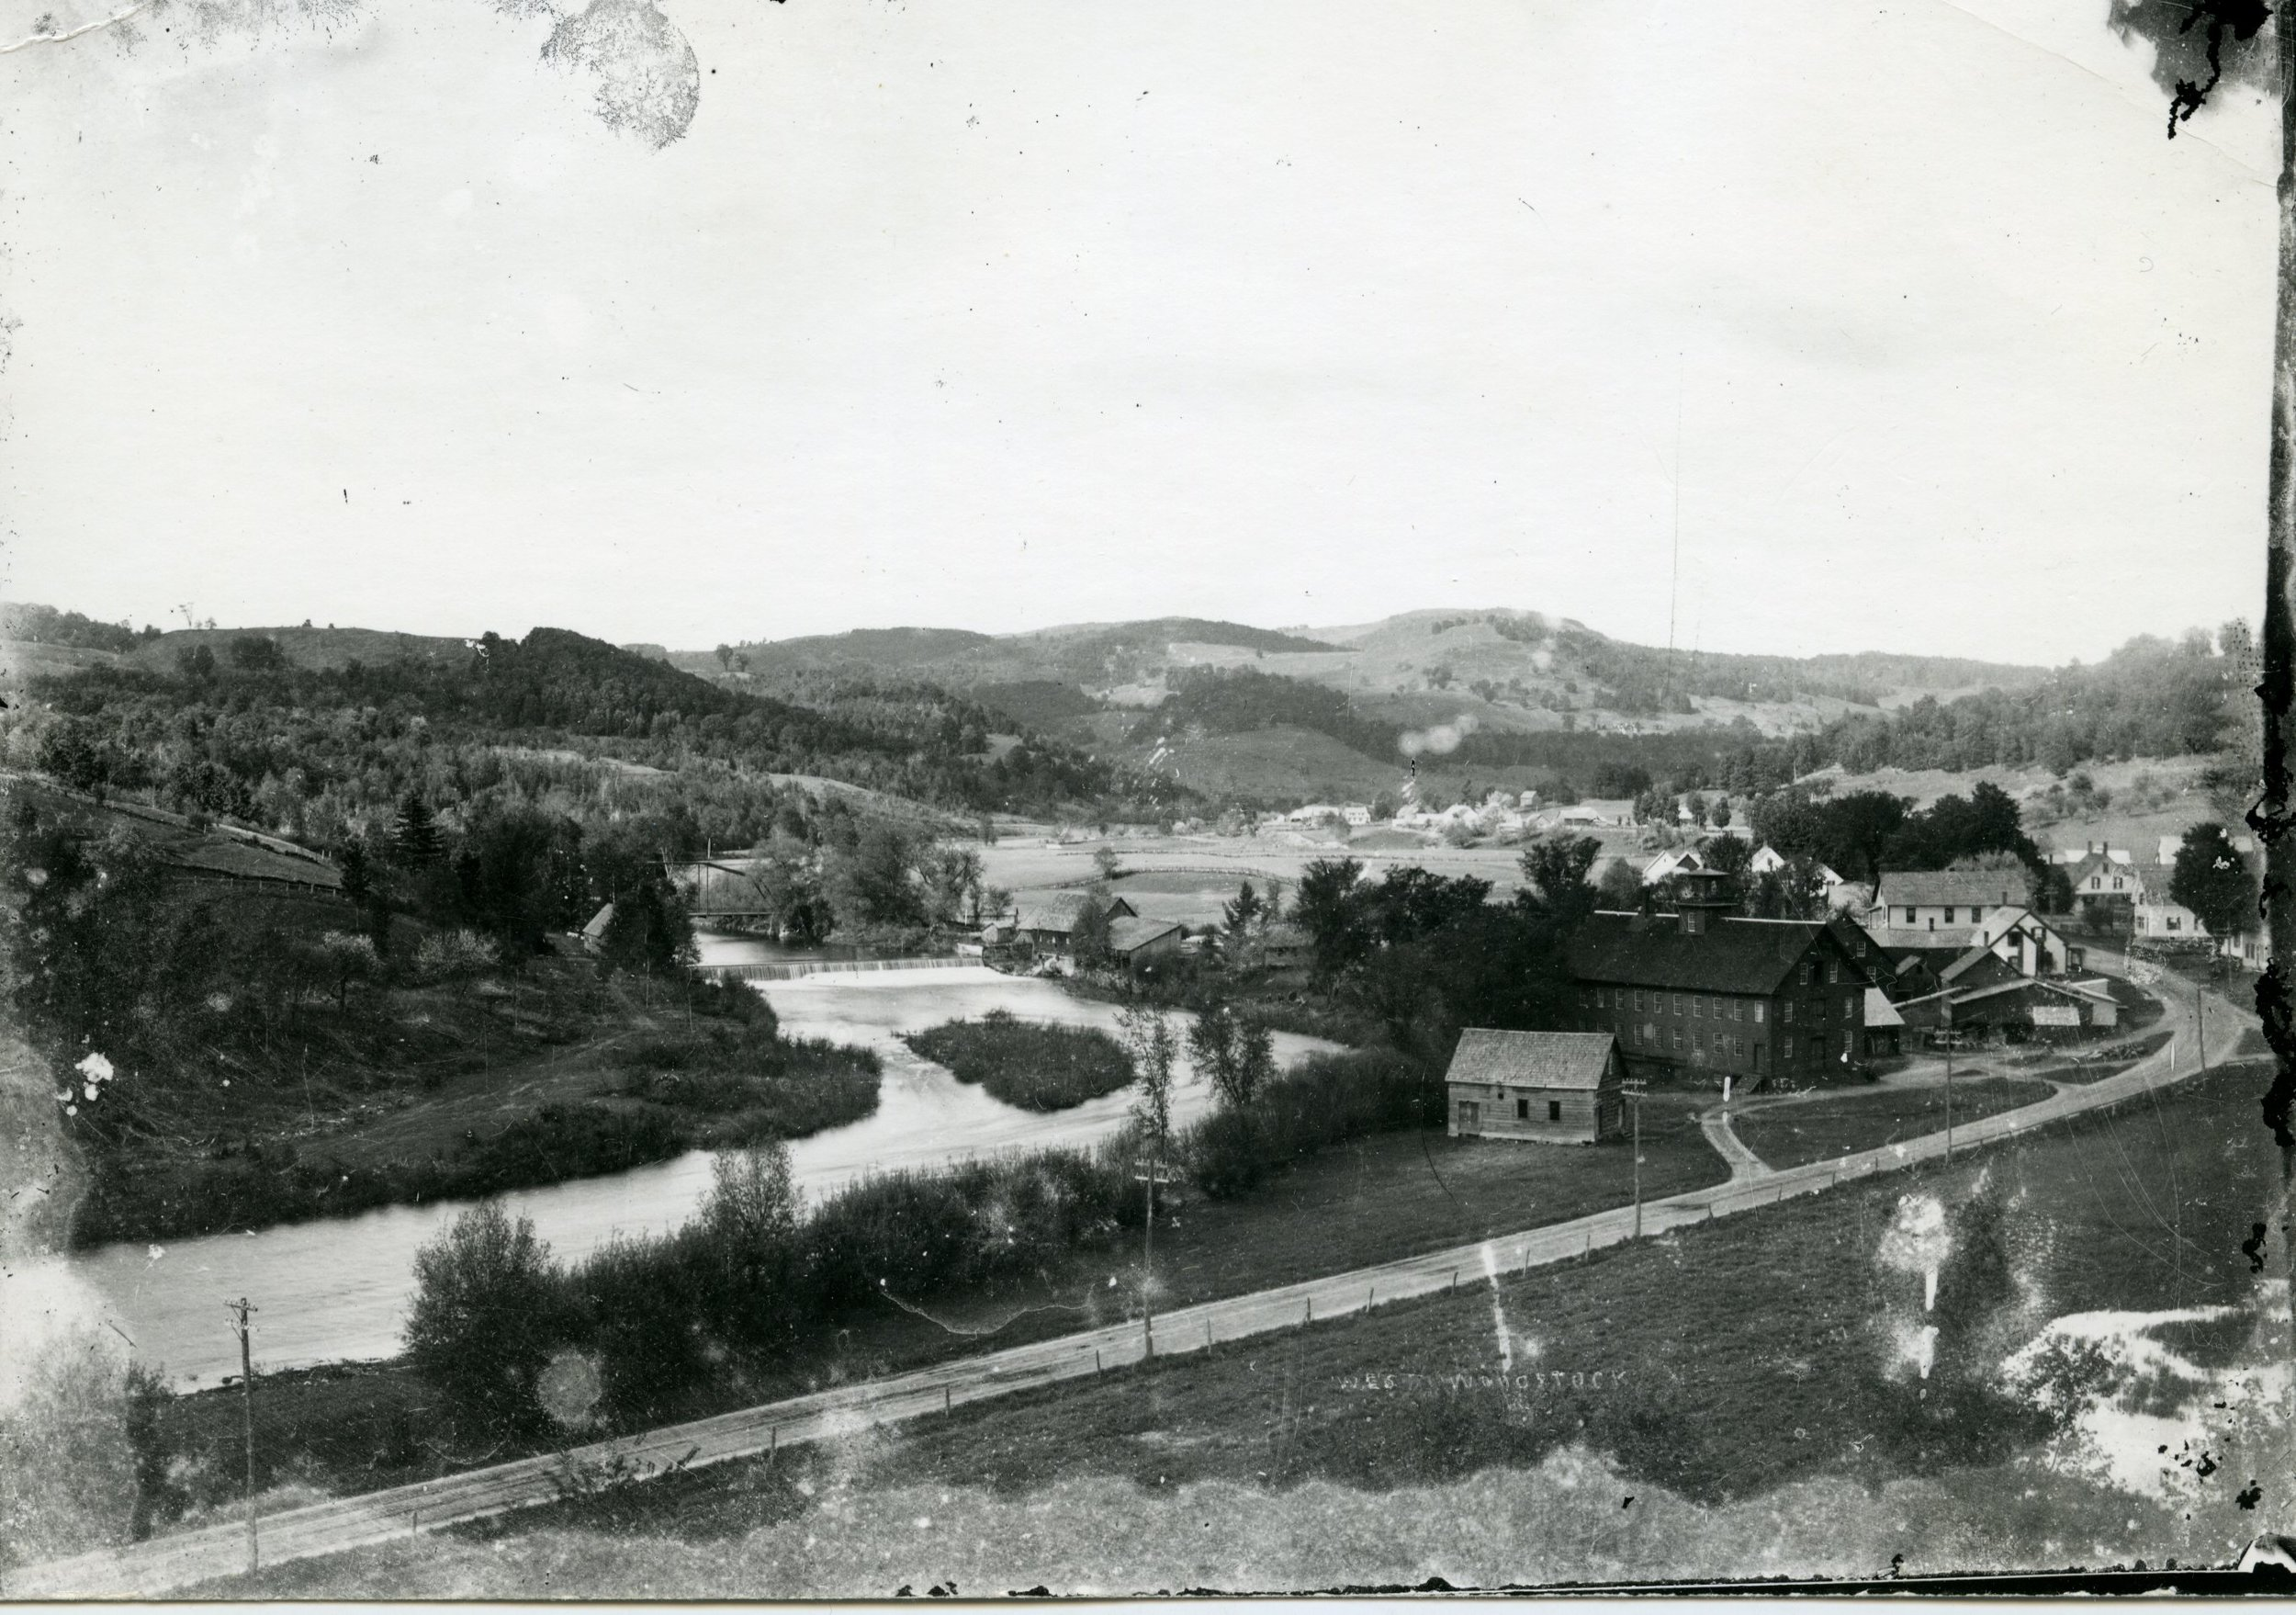 View of West Woodstock - Historically known as The Flats